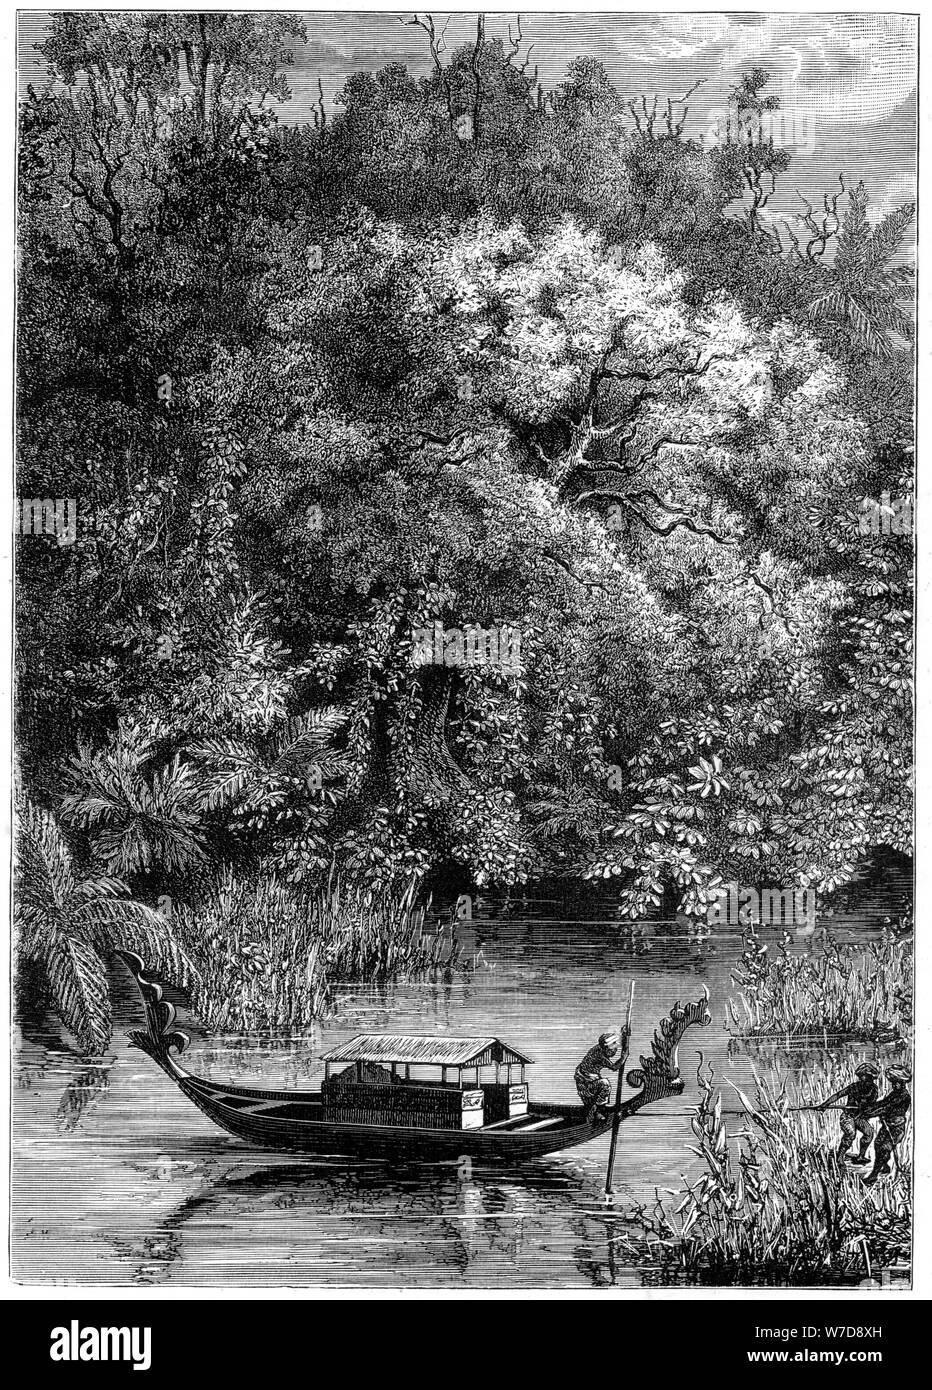 View on the Dodinga River, New Guinea, 1877. Artist: Unknown Stock Photo